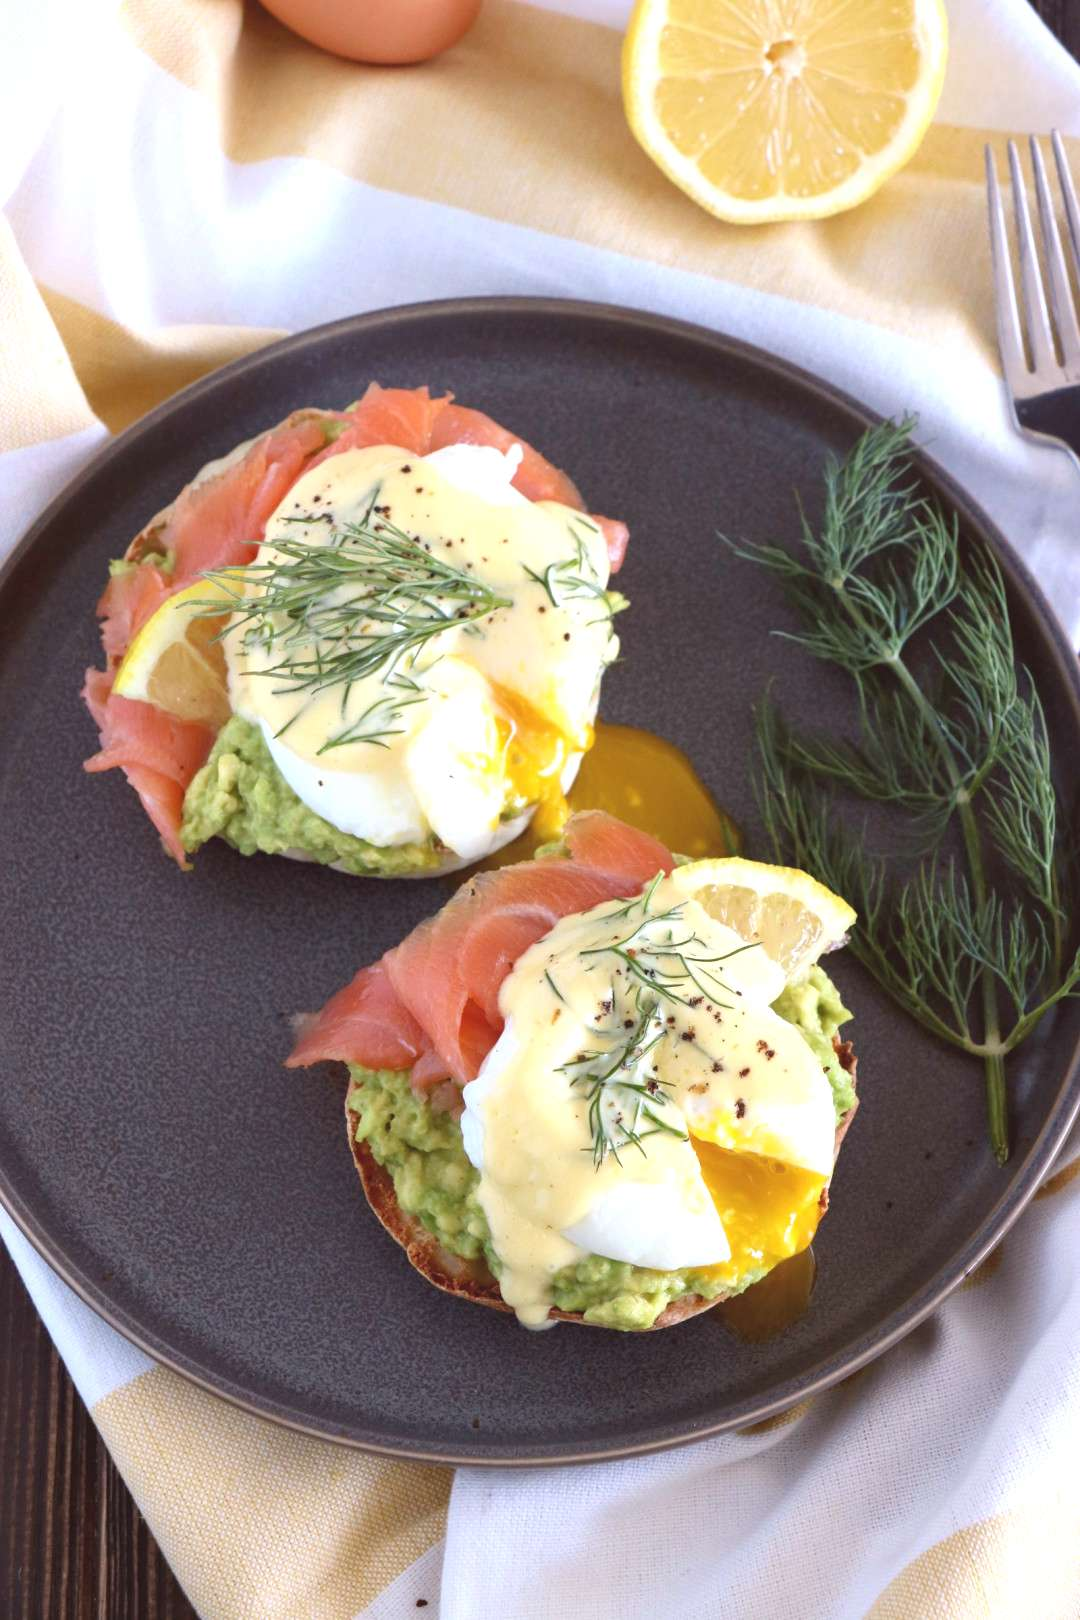 Fancy eggs Benedict with mashed avocado, smoked salmon, and a subtle homemade Hollandaise with fres